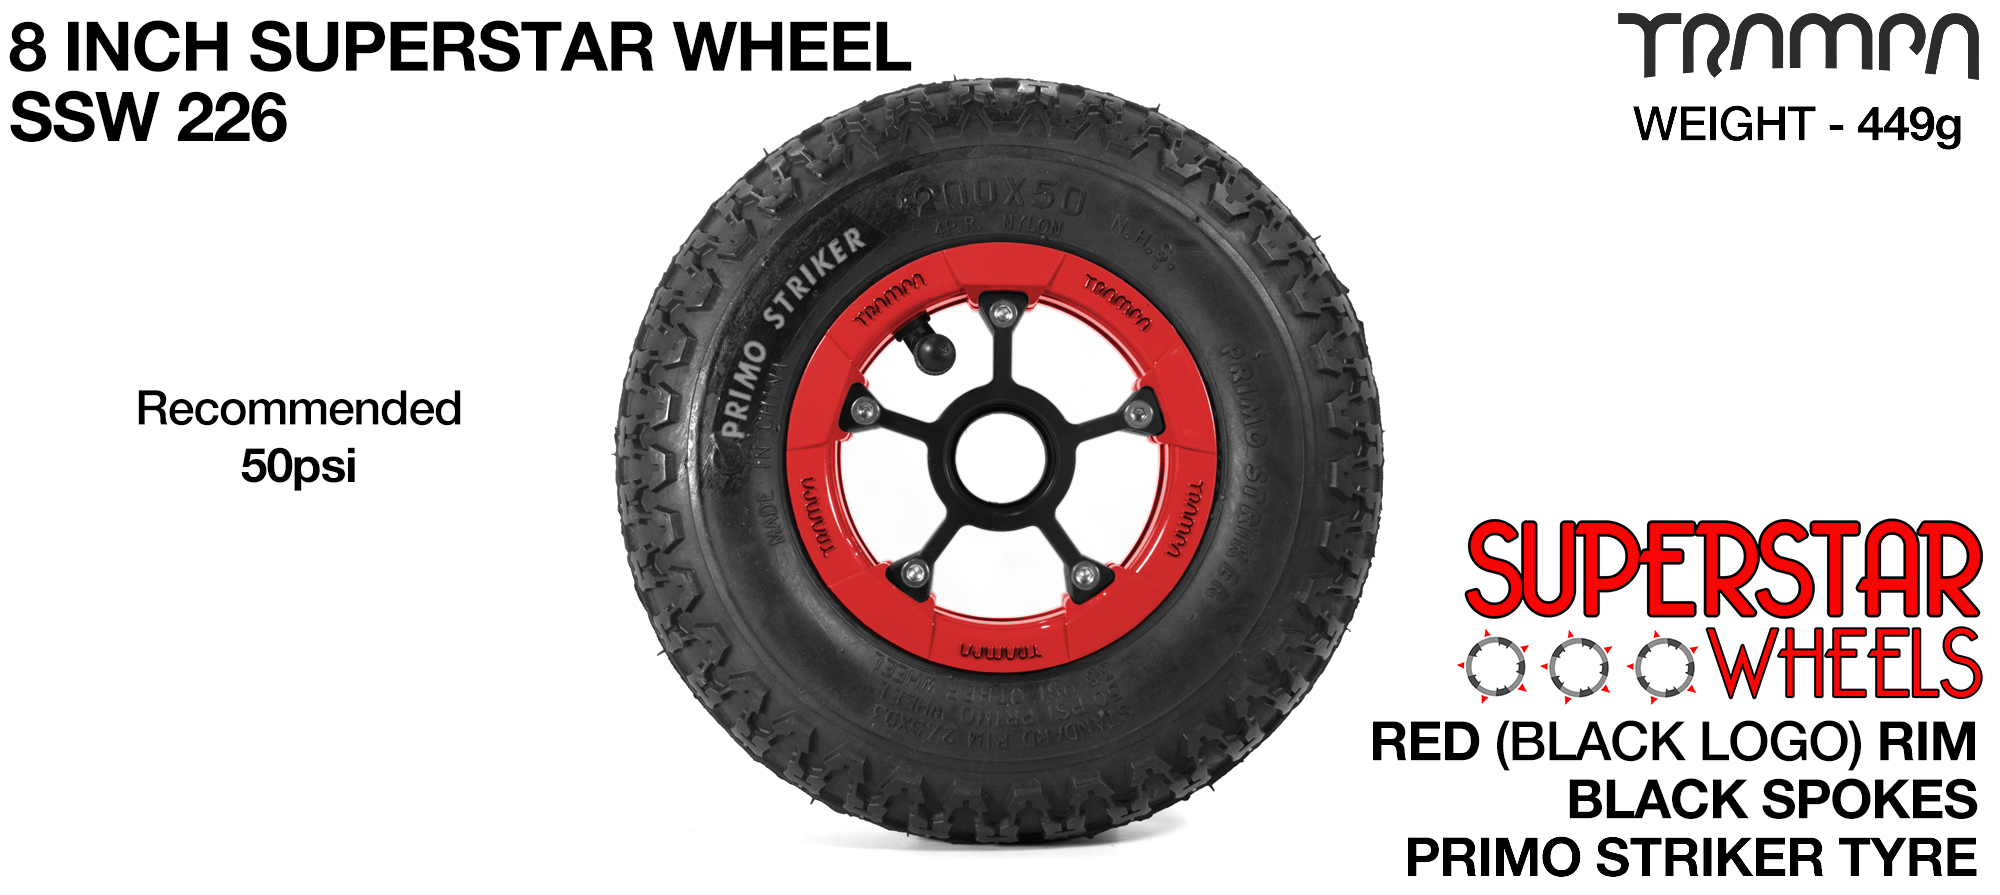 8 Inch Wheel - Red Superstar Rim Black Anodised Spokes & Primo Striker 8 Inch Tyre